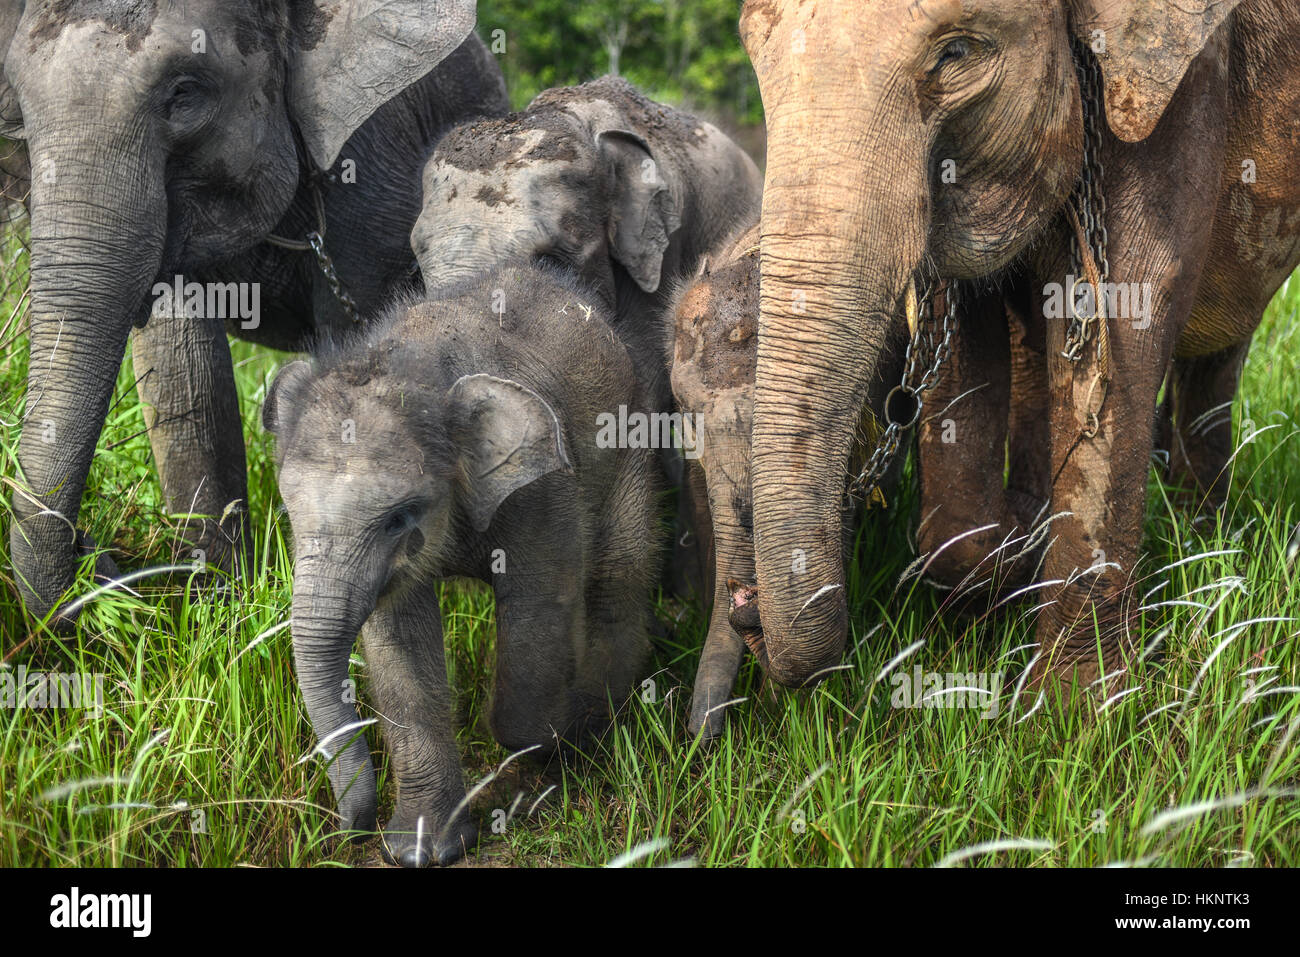 A herd of sumatran elephants walking on grassland. © Reynold Sumayku - Stock Image